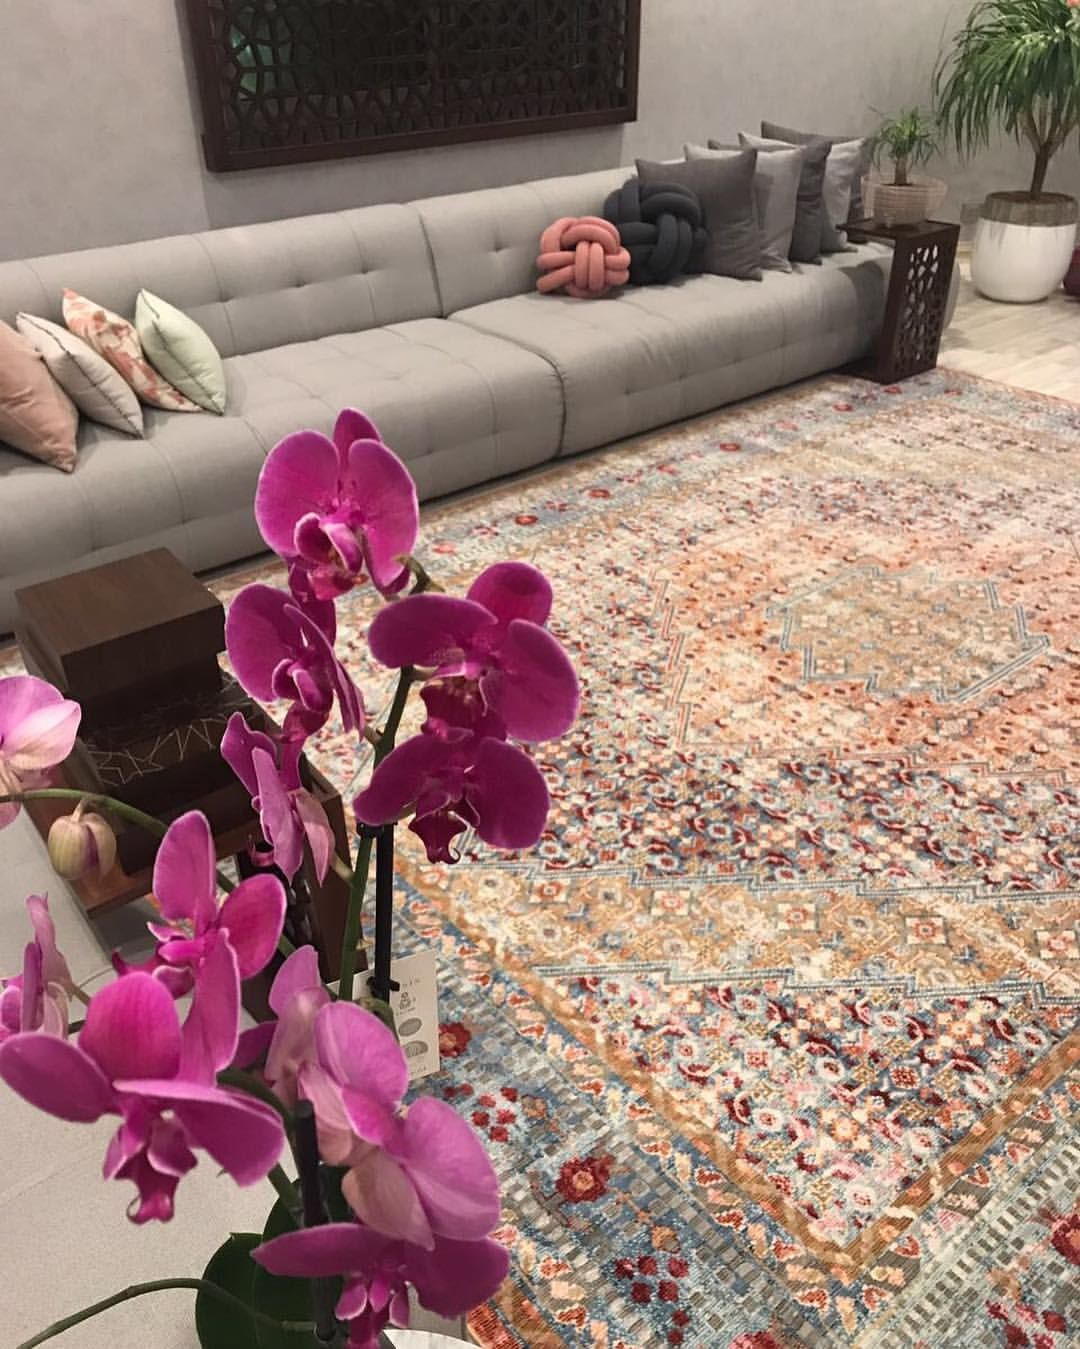 Pin By Lama On Rugs Living Room Design Decor Classic Interior Design Living Room Home Design Decor